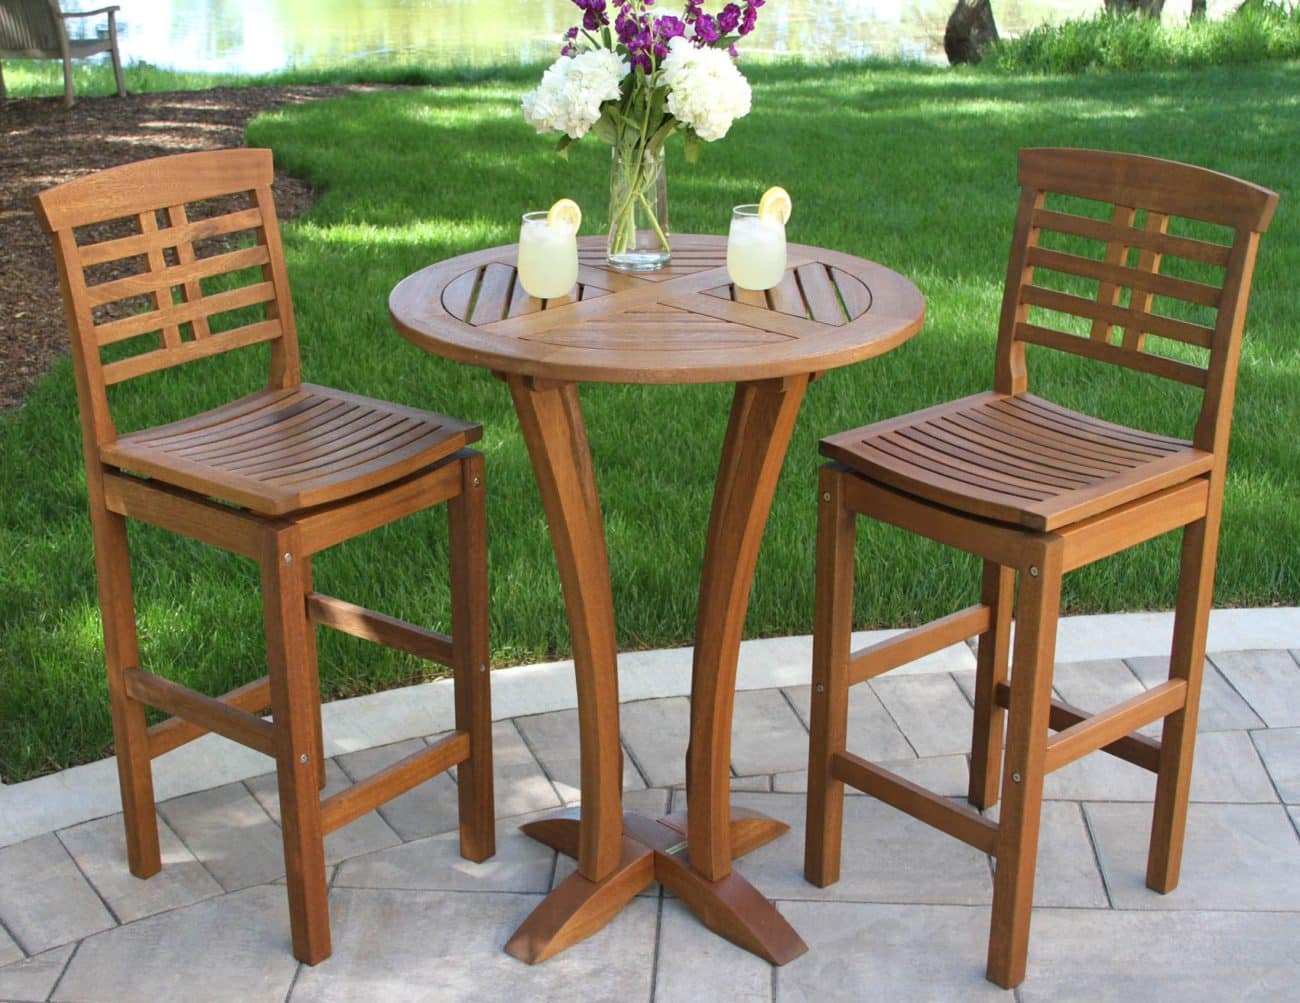 stand wood furniture xxx outdoor tiered stools do category accent bar tables sets plant